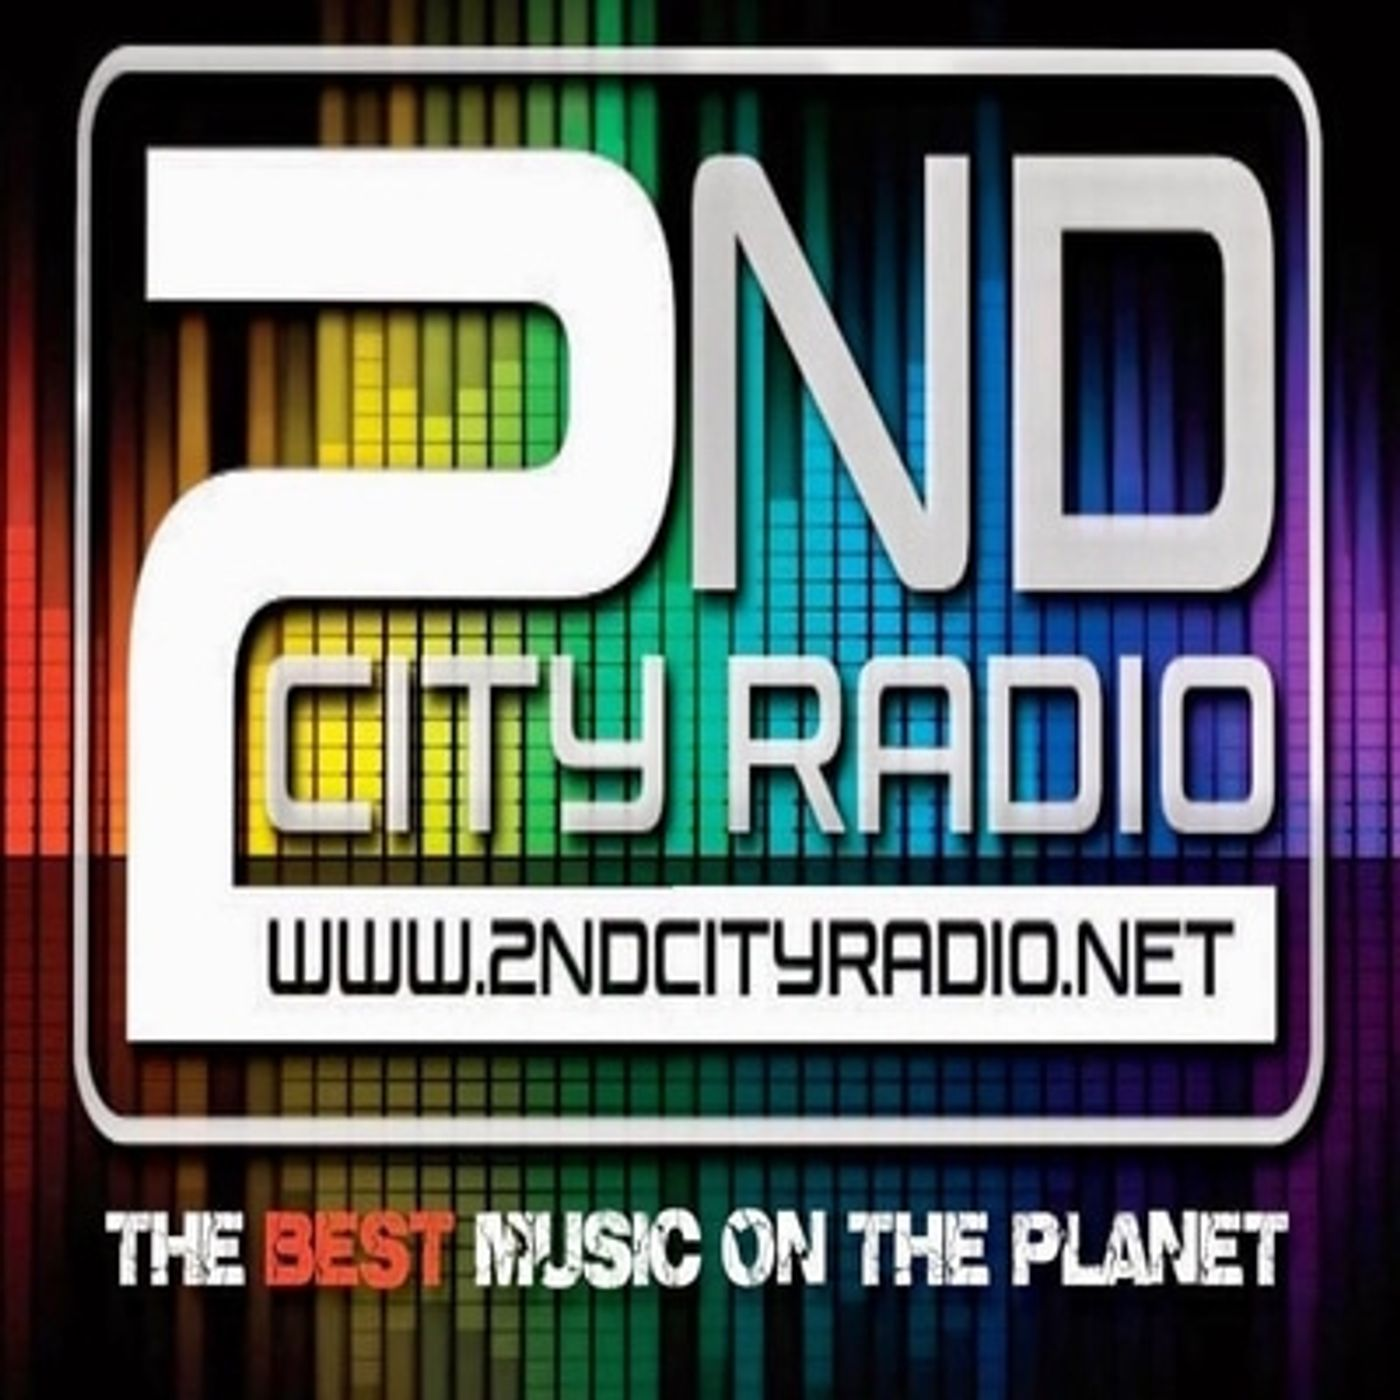 Thursday the 13th of May 2021 on 2ndcity Radio